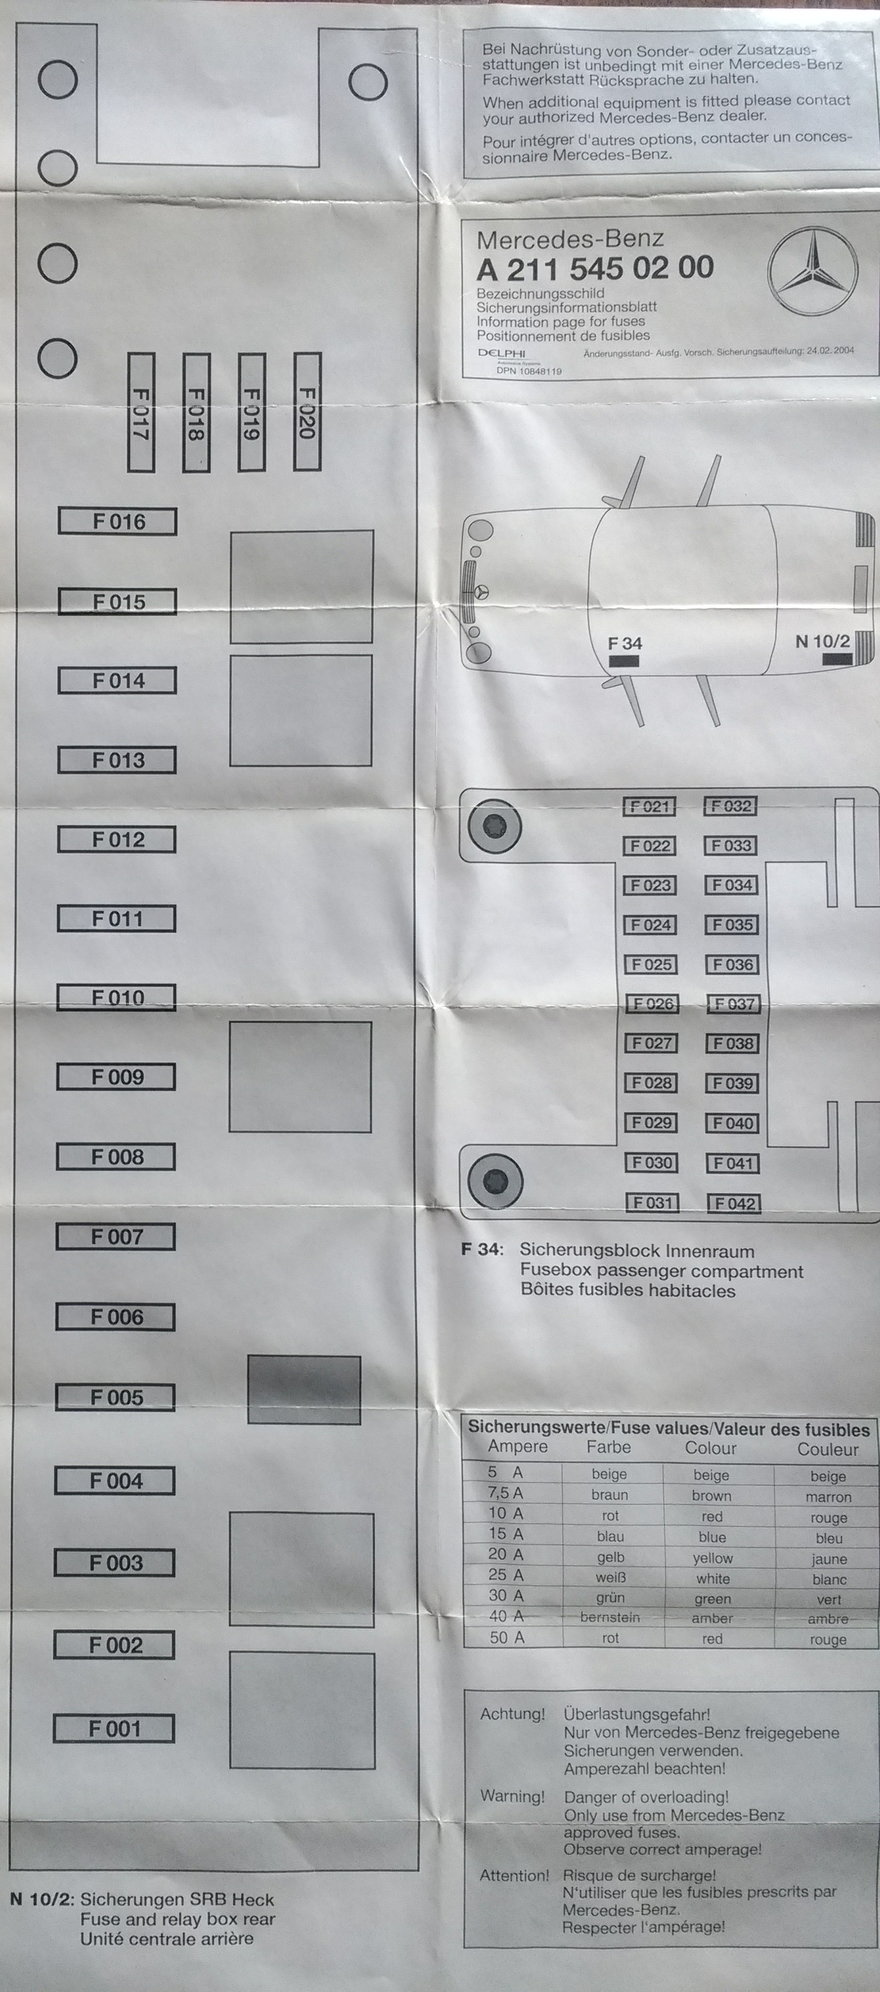 fuse chart from inside by the driver door, it doesn't give any info on  relays!